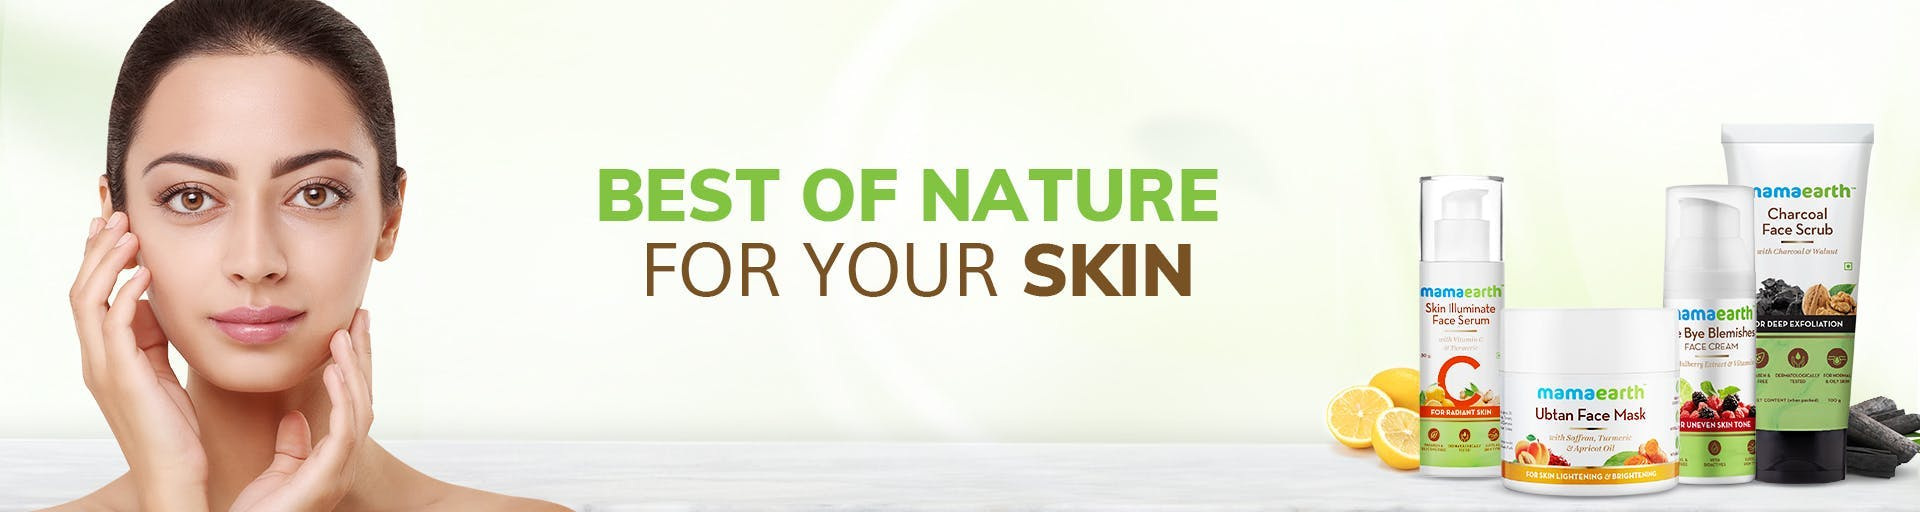 mamaearth.in - Skin Care starting at just ₹249